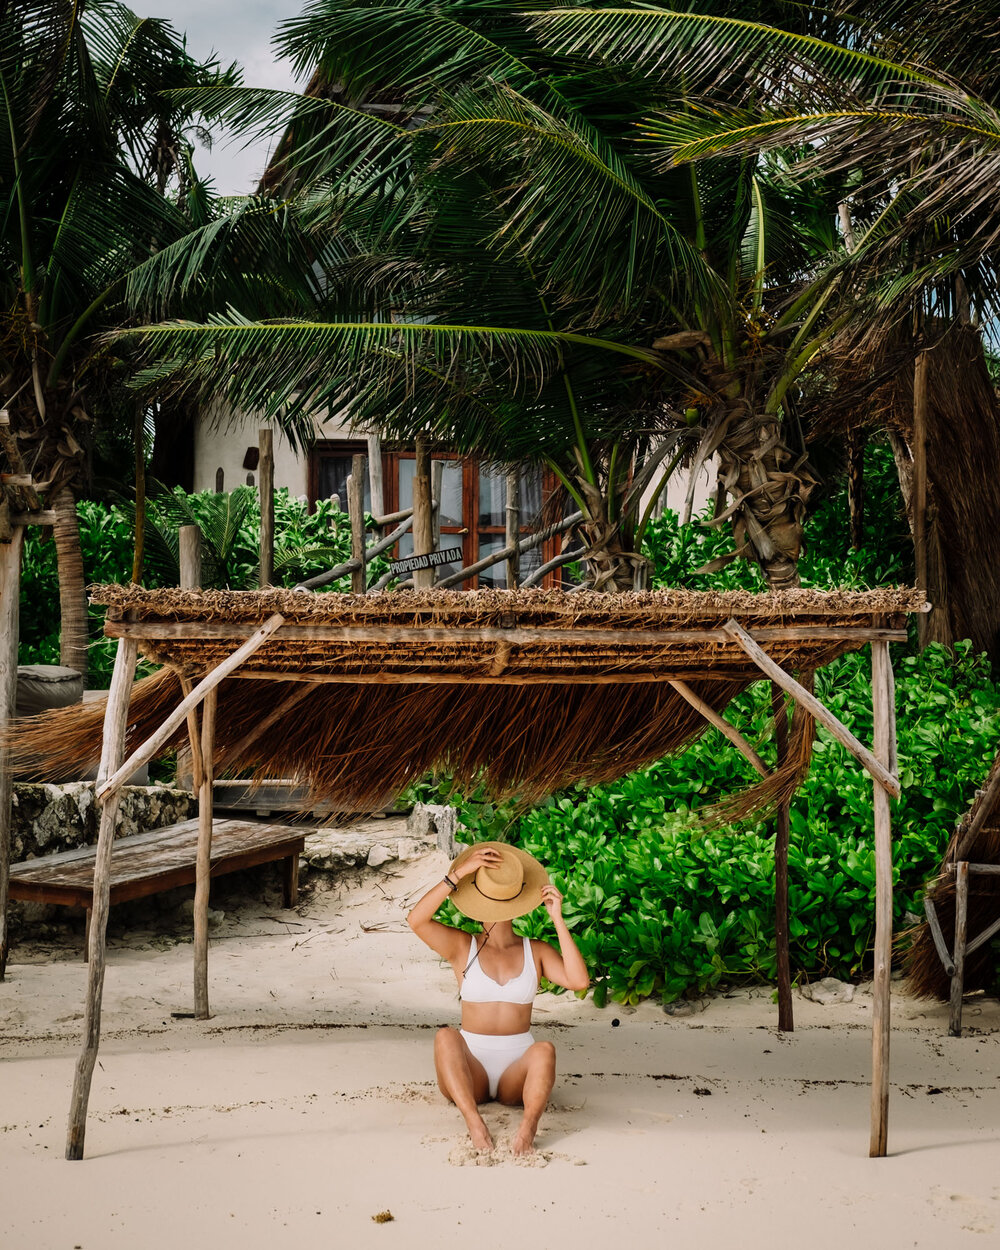 Rachel Off Duty: A Woman Covers Her Face with a Hat on a Beach in Tulum, Mexico